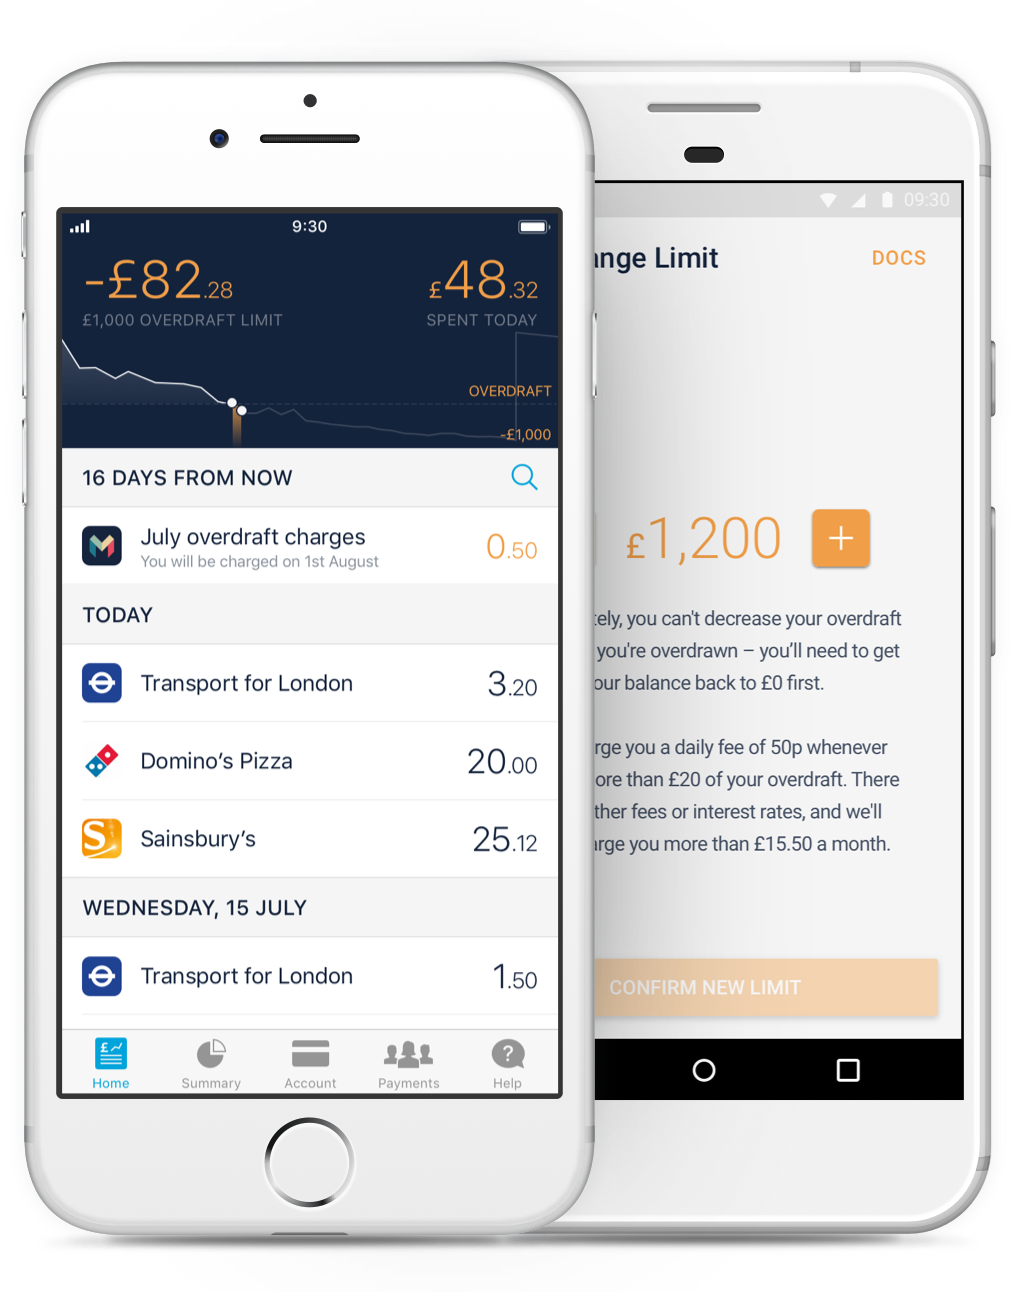 Monzo app home feed with overdraft information